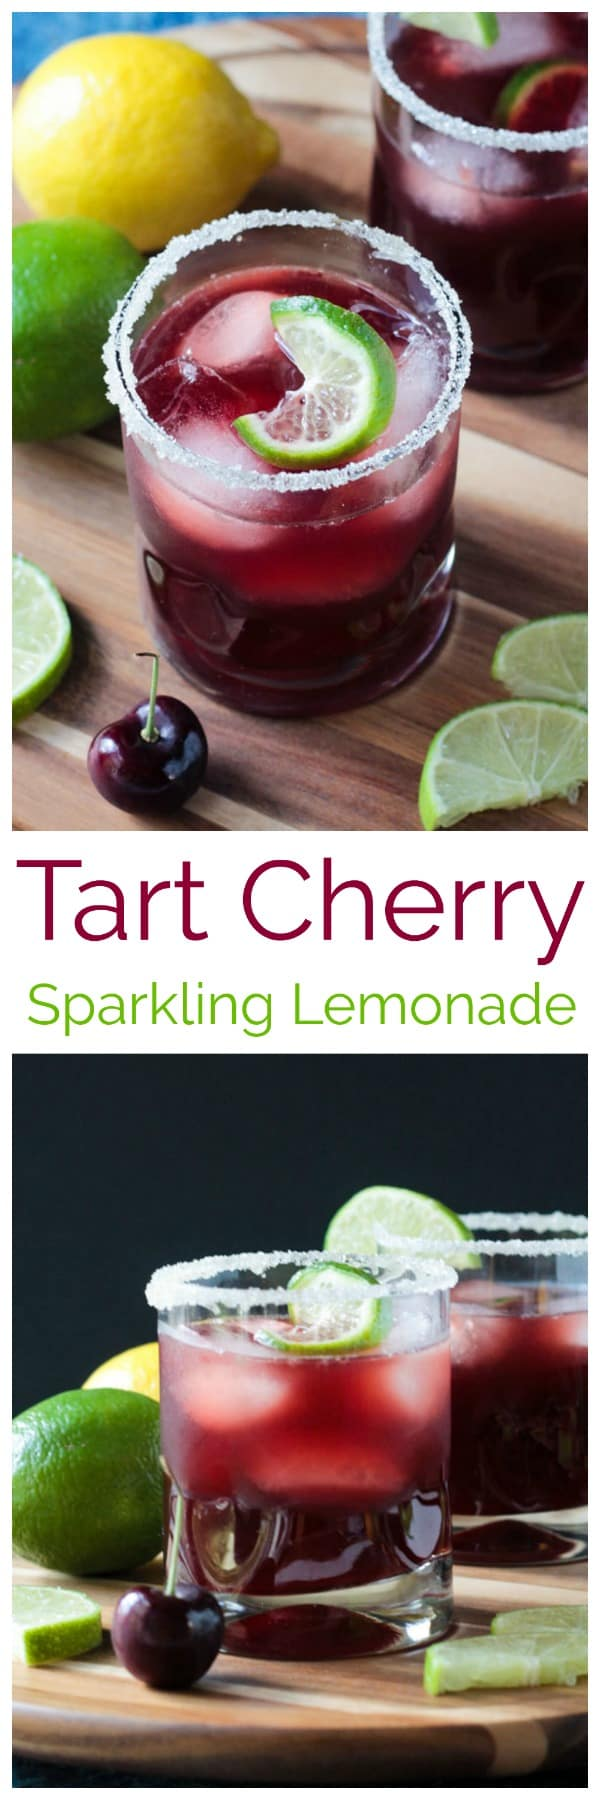 Tart Cherry Sparkling Lemonade - sweet, tart, and a little fizzy, this easy-to-make fruit juice drink is the perfect summer sip! Just 3 ingredients and optional sweetener and you're on your way to beverage bliss. #vegan #glutenfree #dairyfree #quickandeasy #beverage #drink #lemonade #tartcherry #cherry #summer #refreshing #sparklingwater